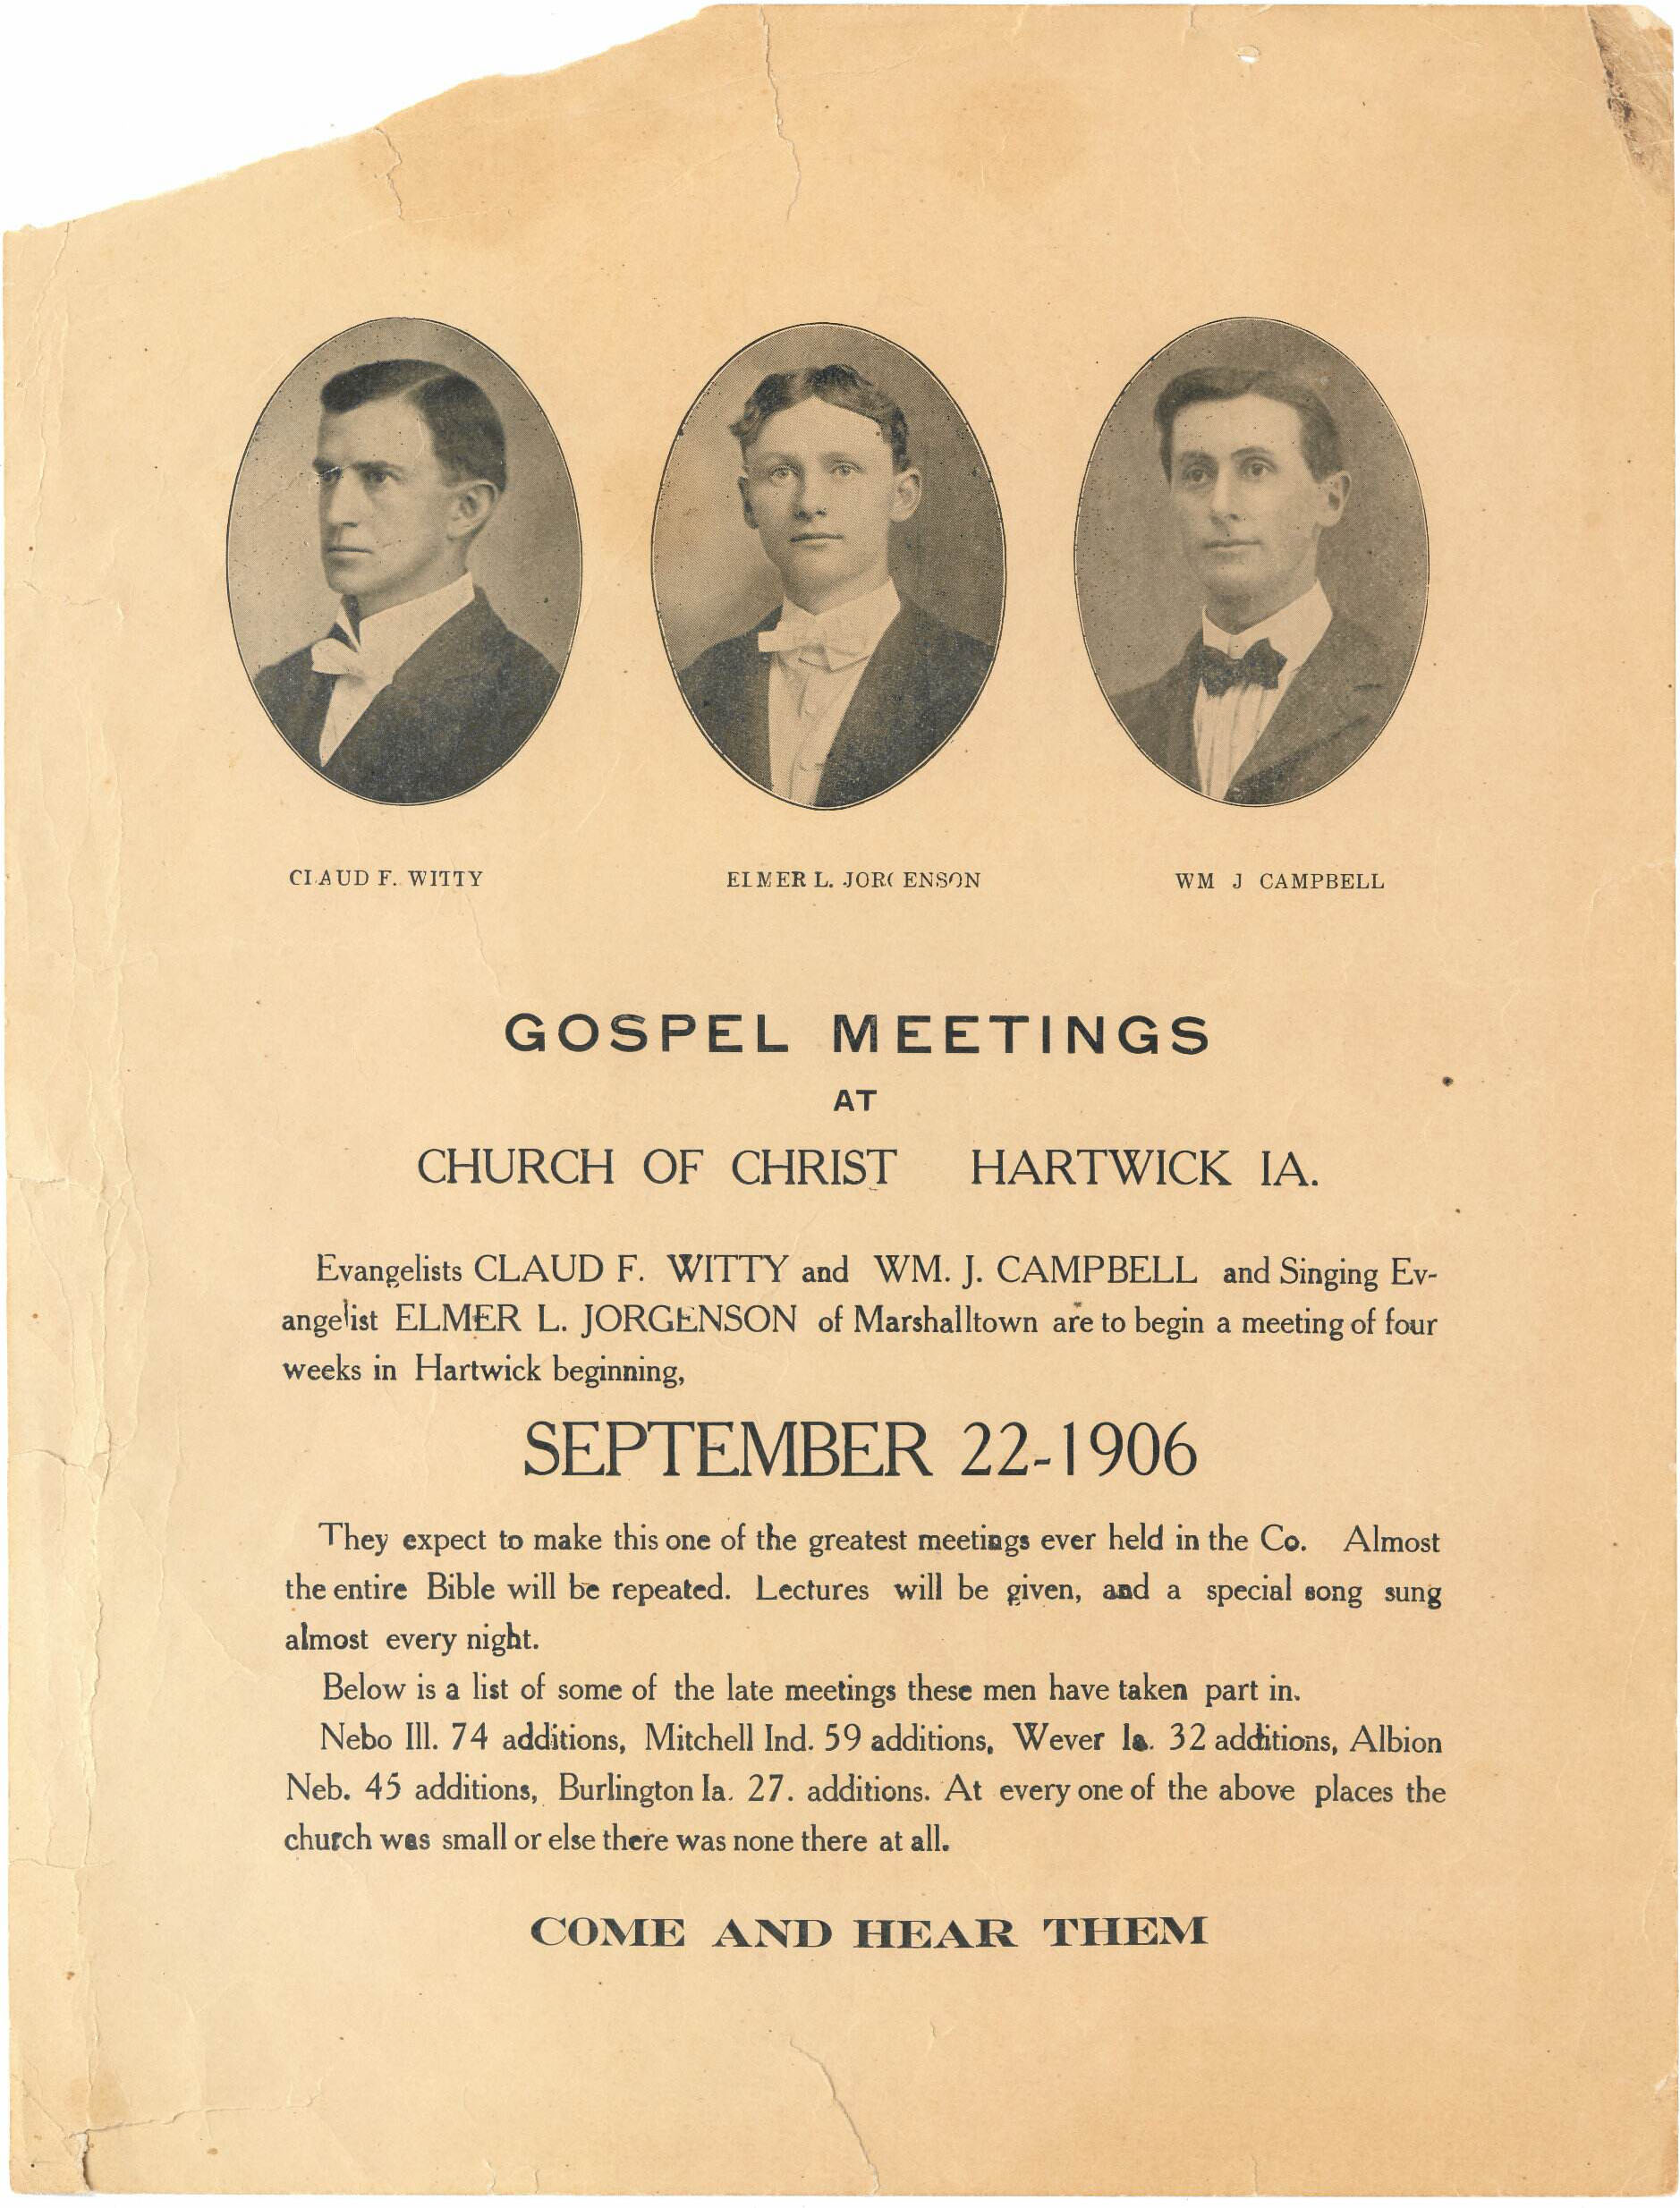 Poster. September 1906. On loan from M. Ice, Director of Special Collections